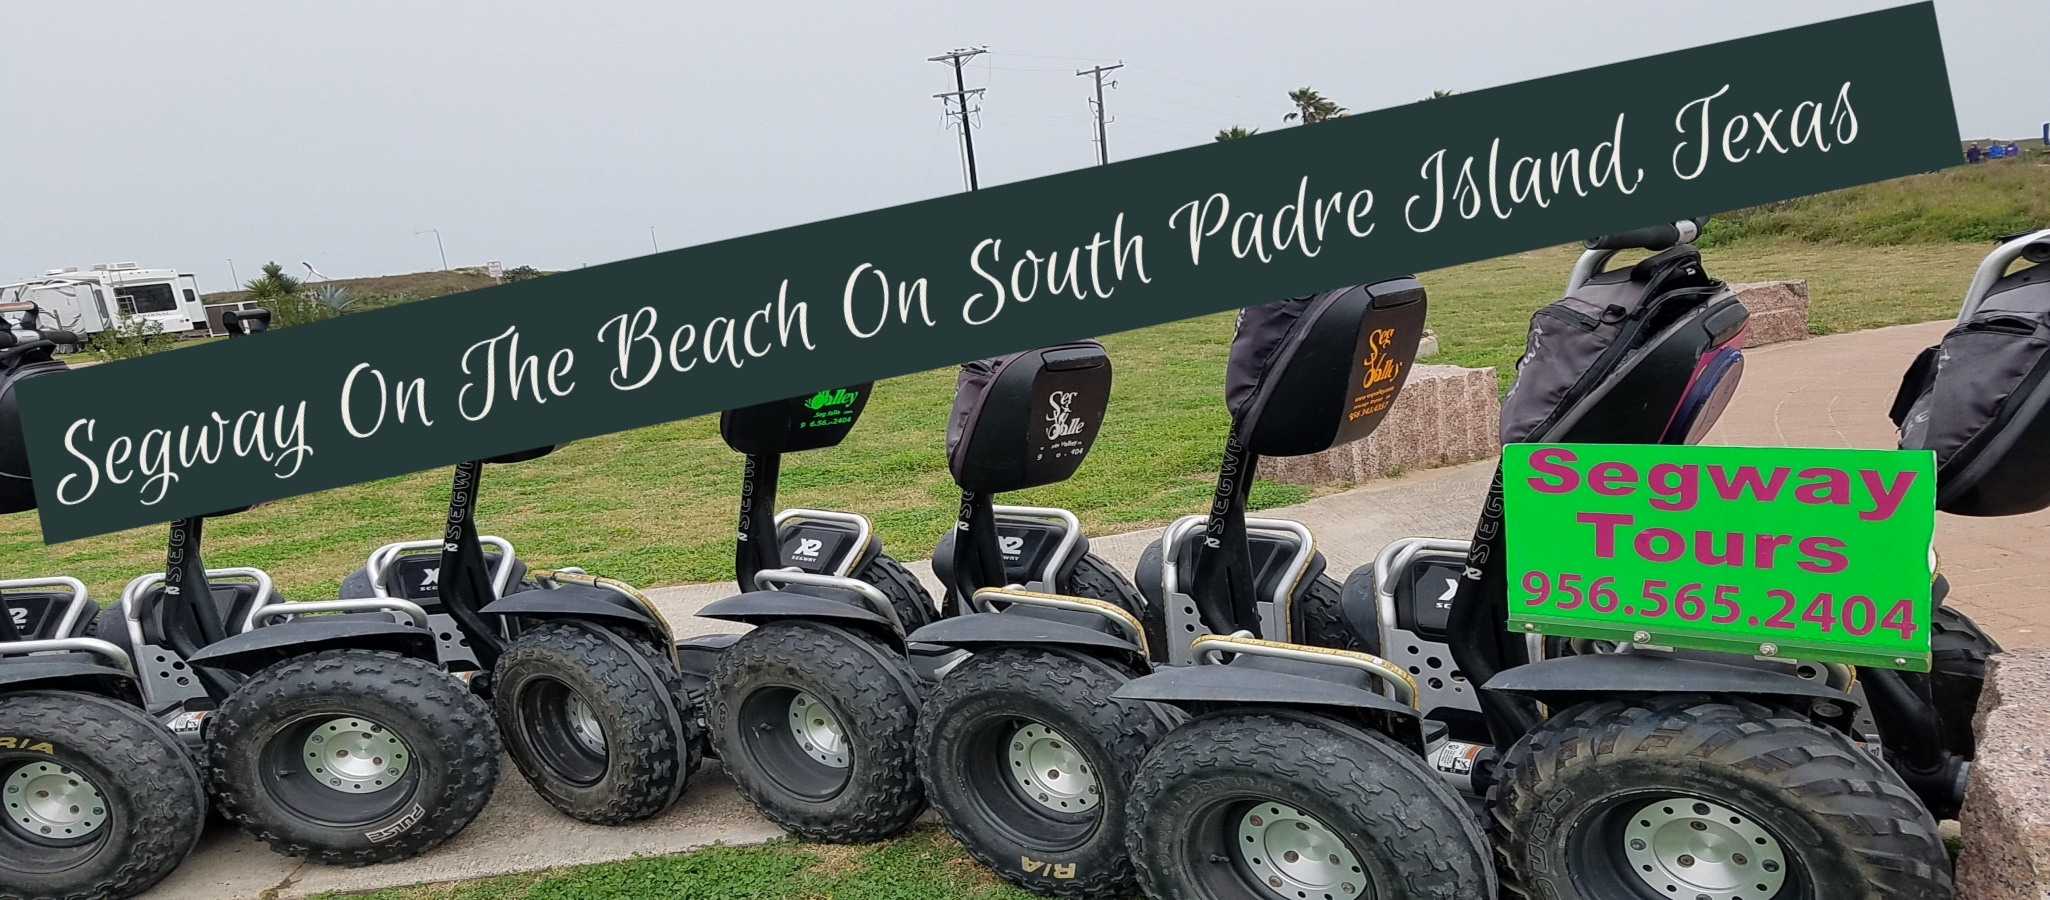 South Padre Island Segway Tours